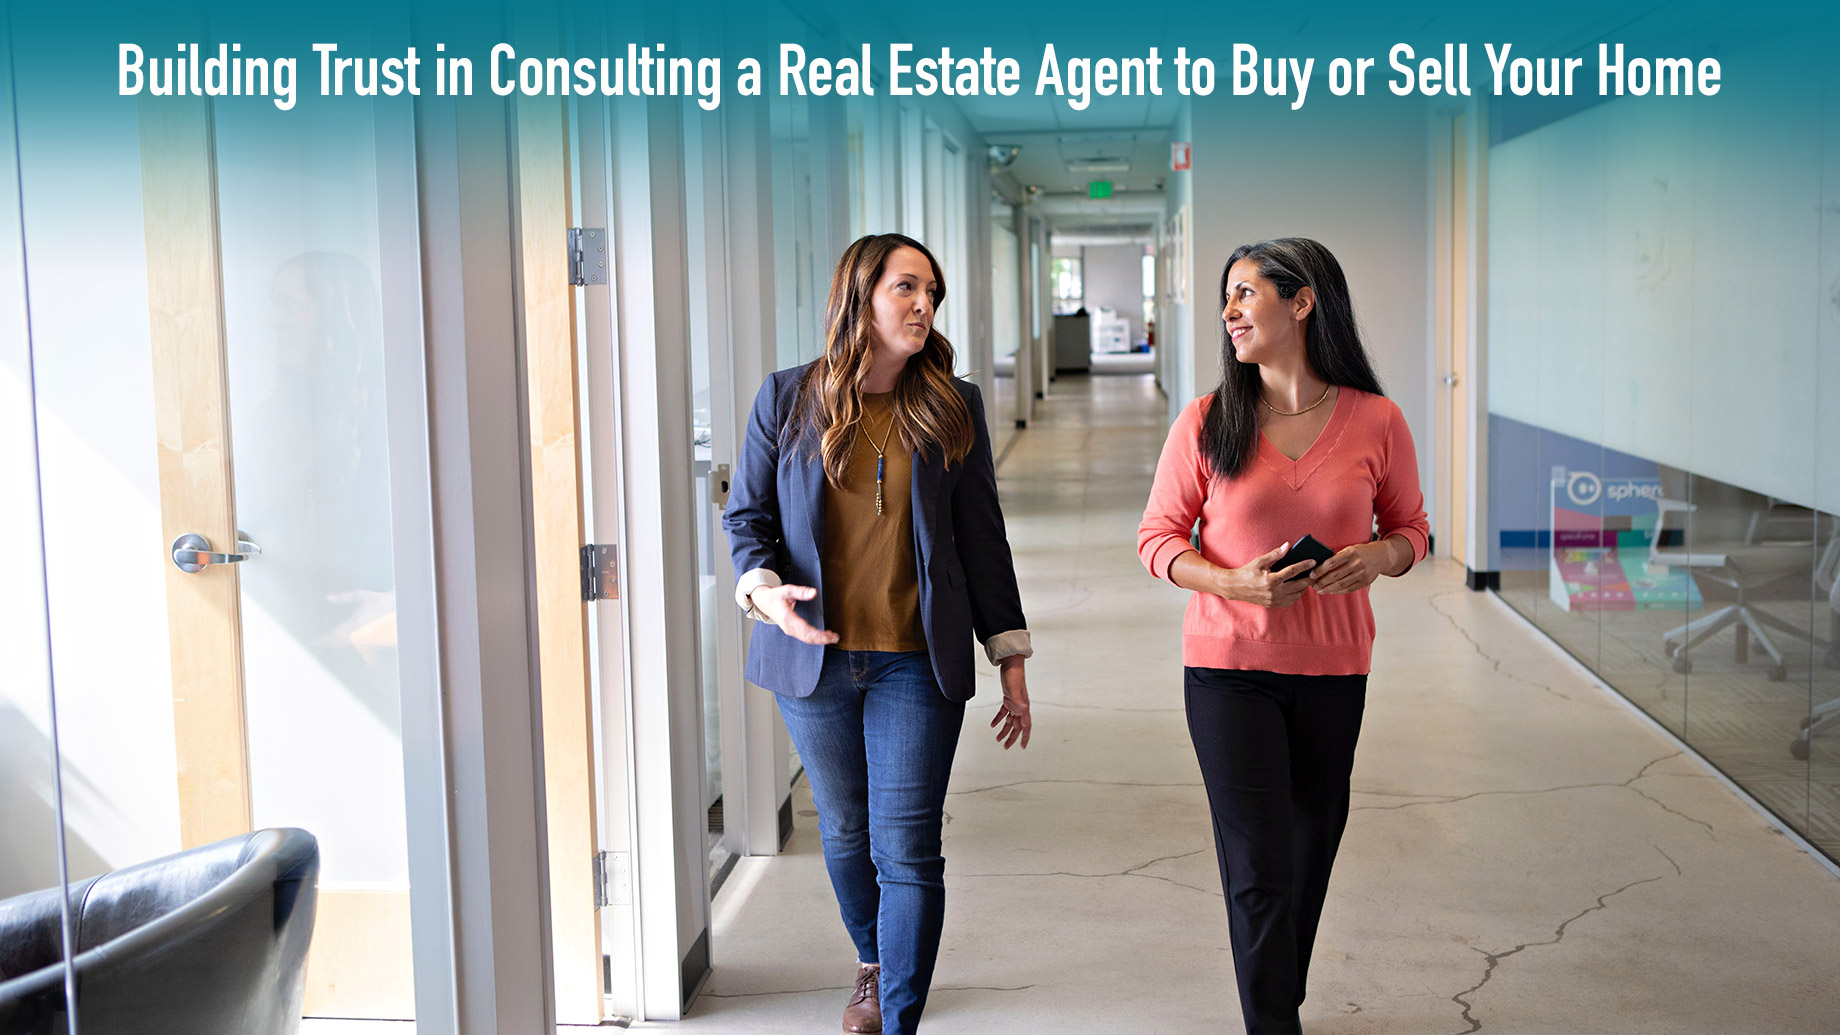 Building Trust in Consulting a Real Estate Agent to Buy or Sell Your Home